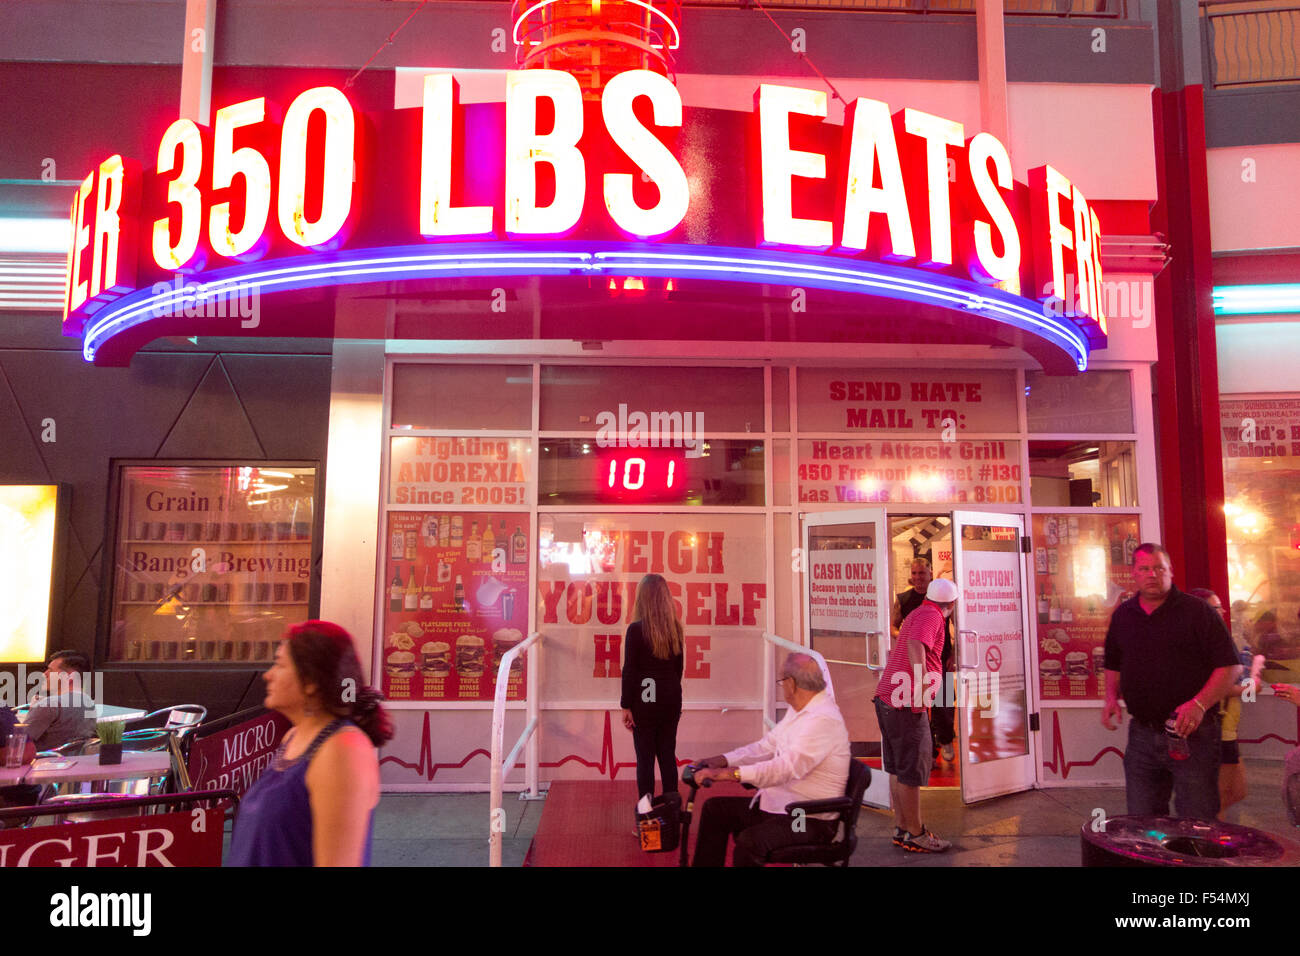 Heart Attack Grill, A Restaurant Catering To Diners Who Enjoy Red Meat And  Large Food Portions, On Fremont Street, Las Vegas USA